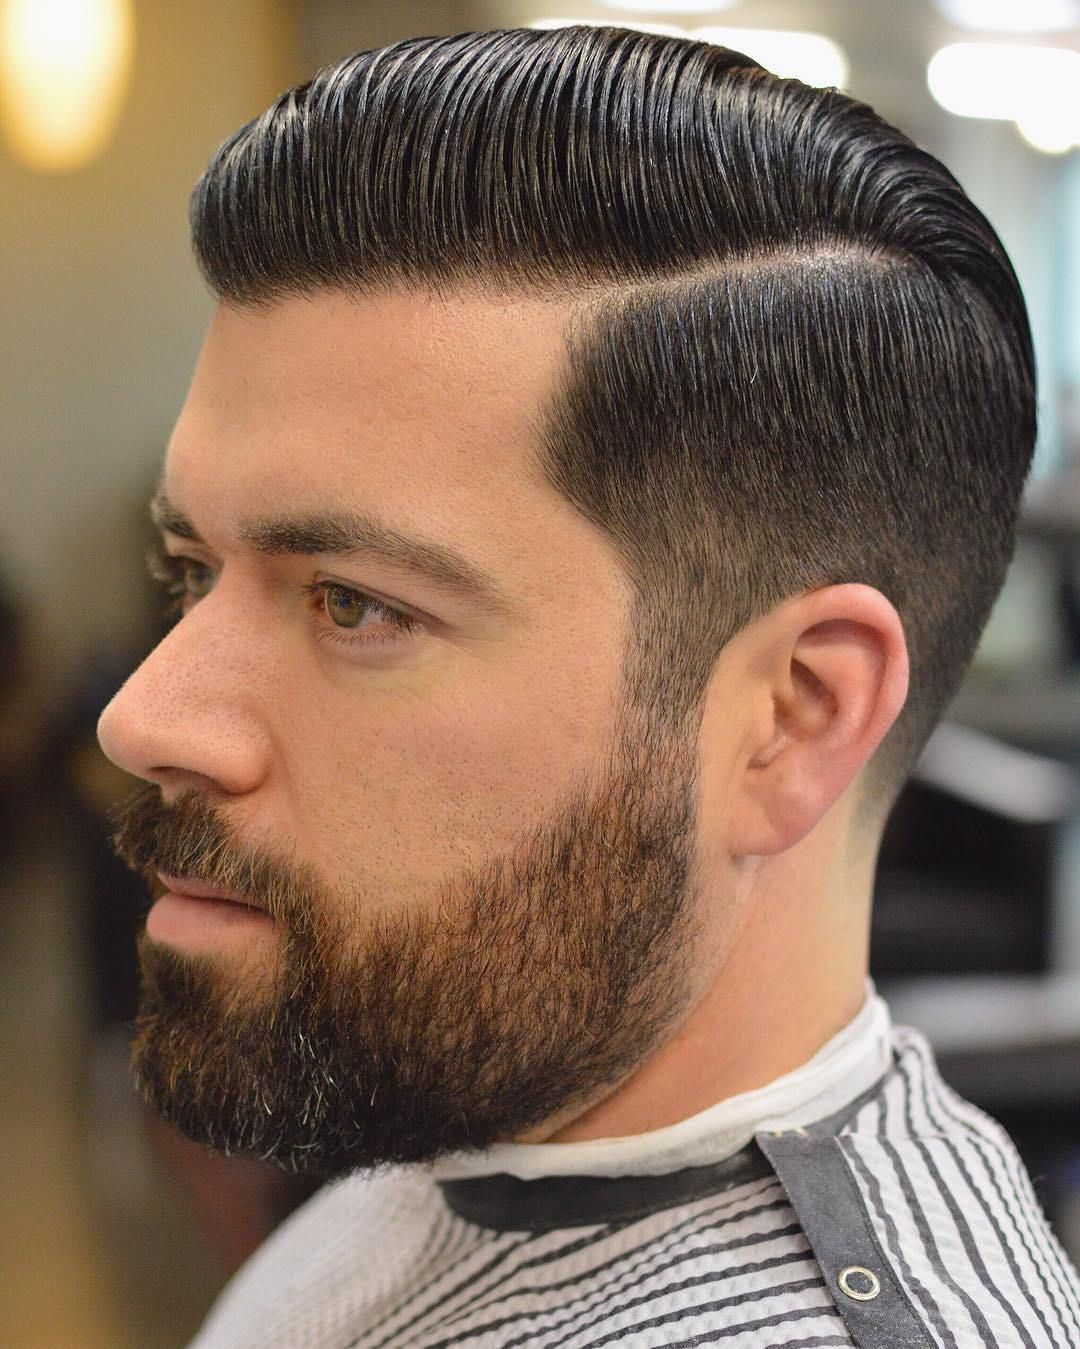 Simple Hairstyles For School Simple Hairstyles For Long Hair Simple Hairstyles For Short Hai Comb Over Fade Haircut Medium Length Hair Styles Easy Hairstyles